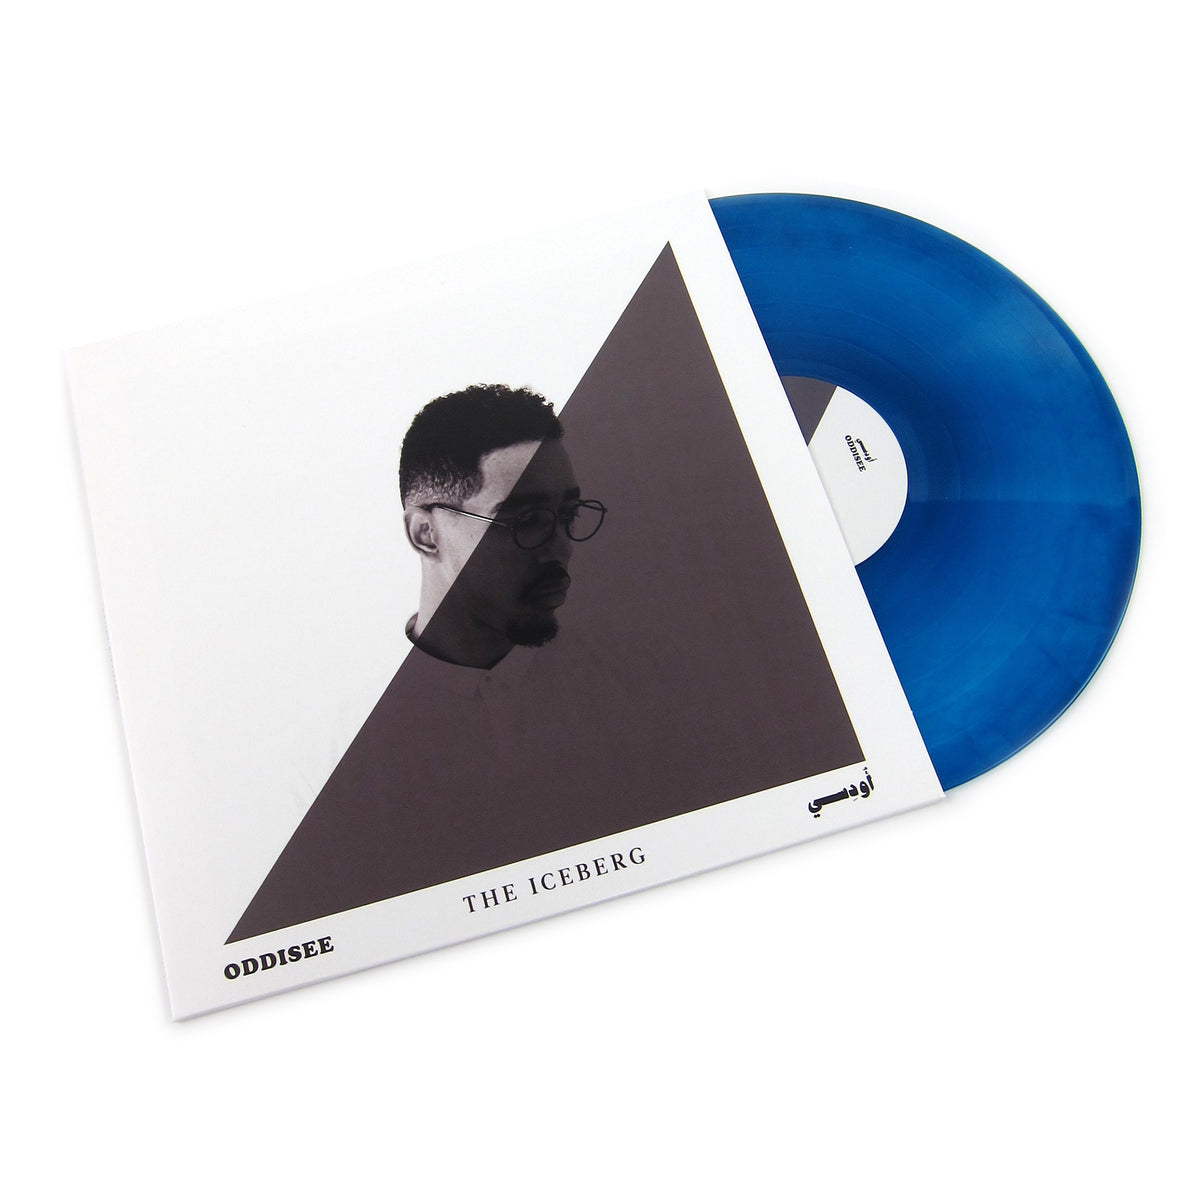 Oddisee: The Iceberg (Colored Vinyl) Vinyl LP